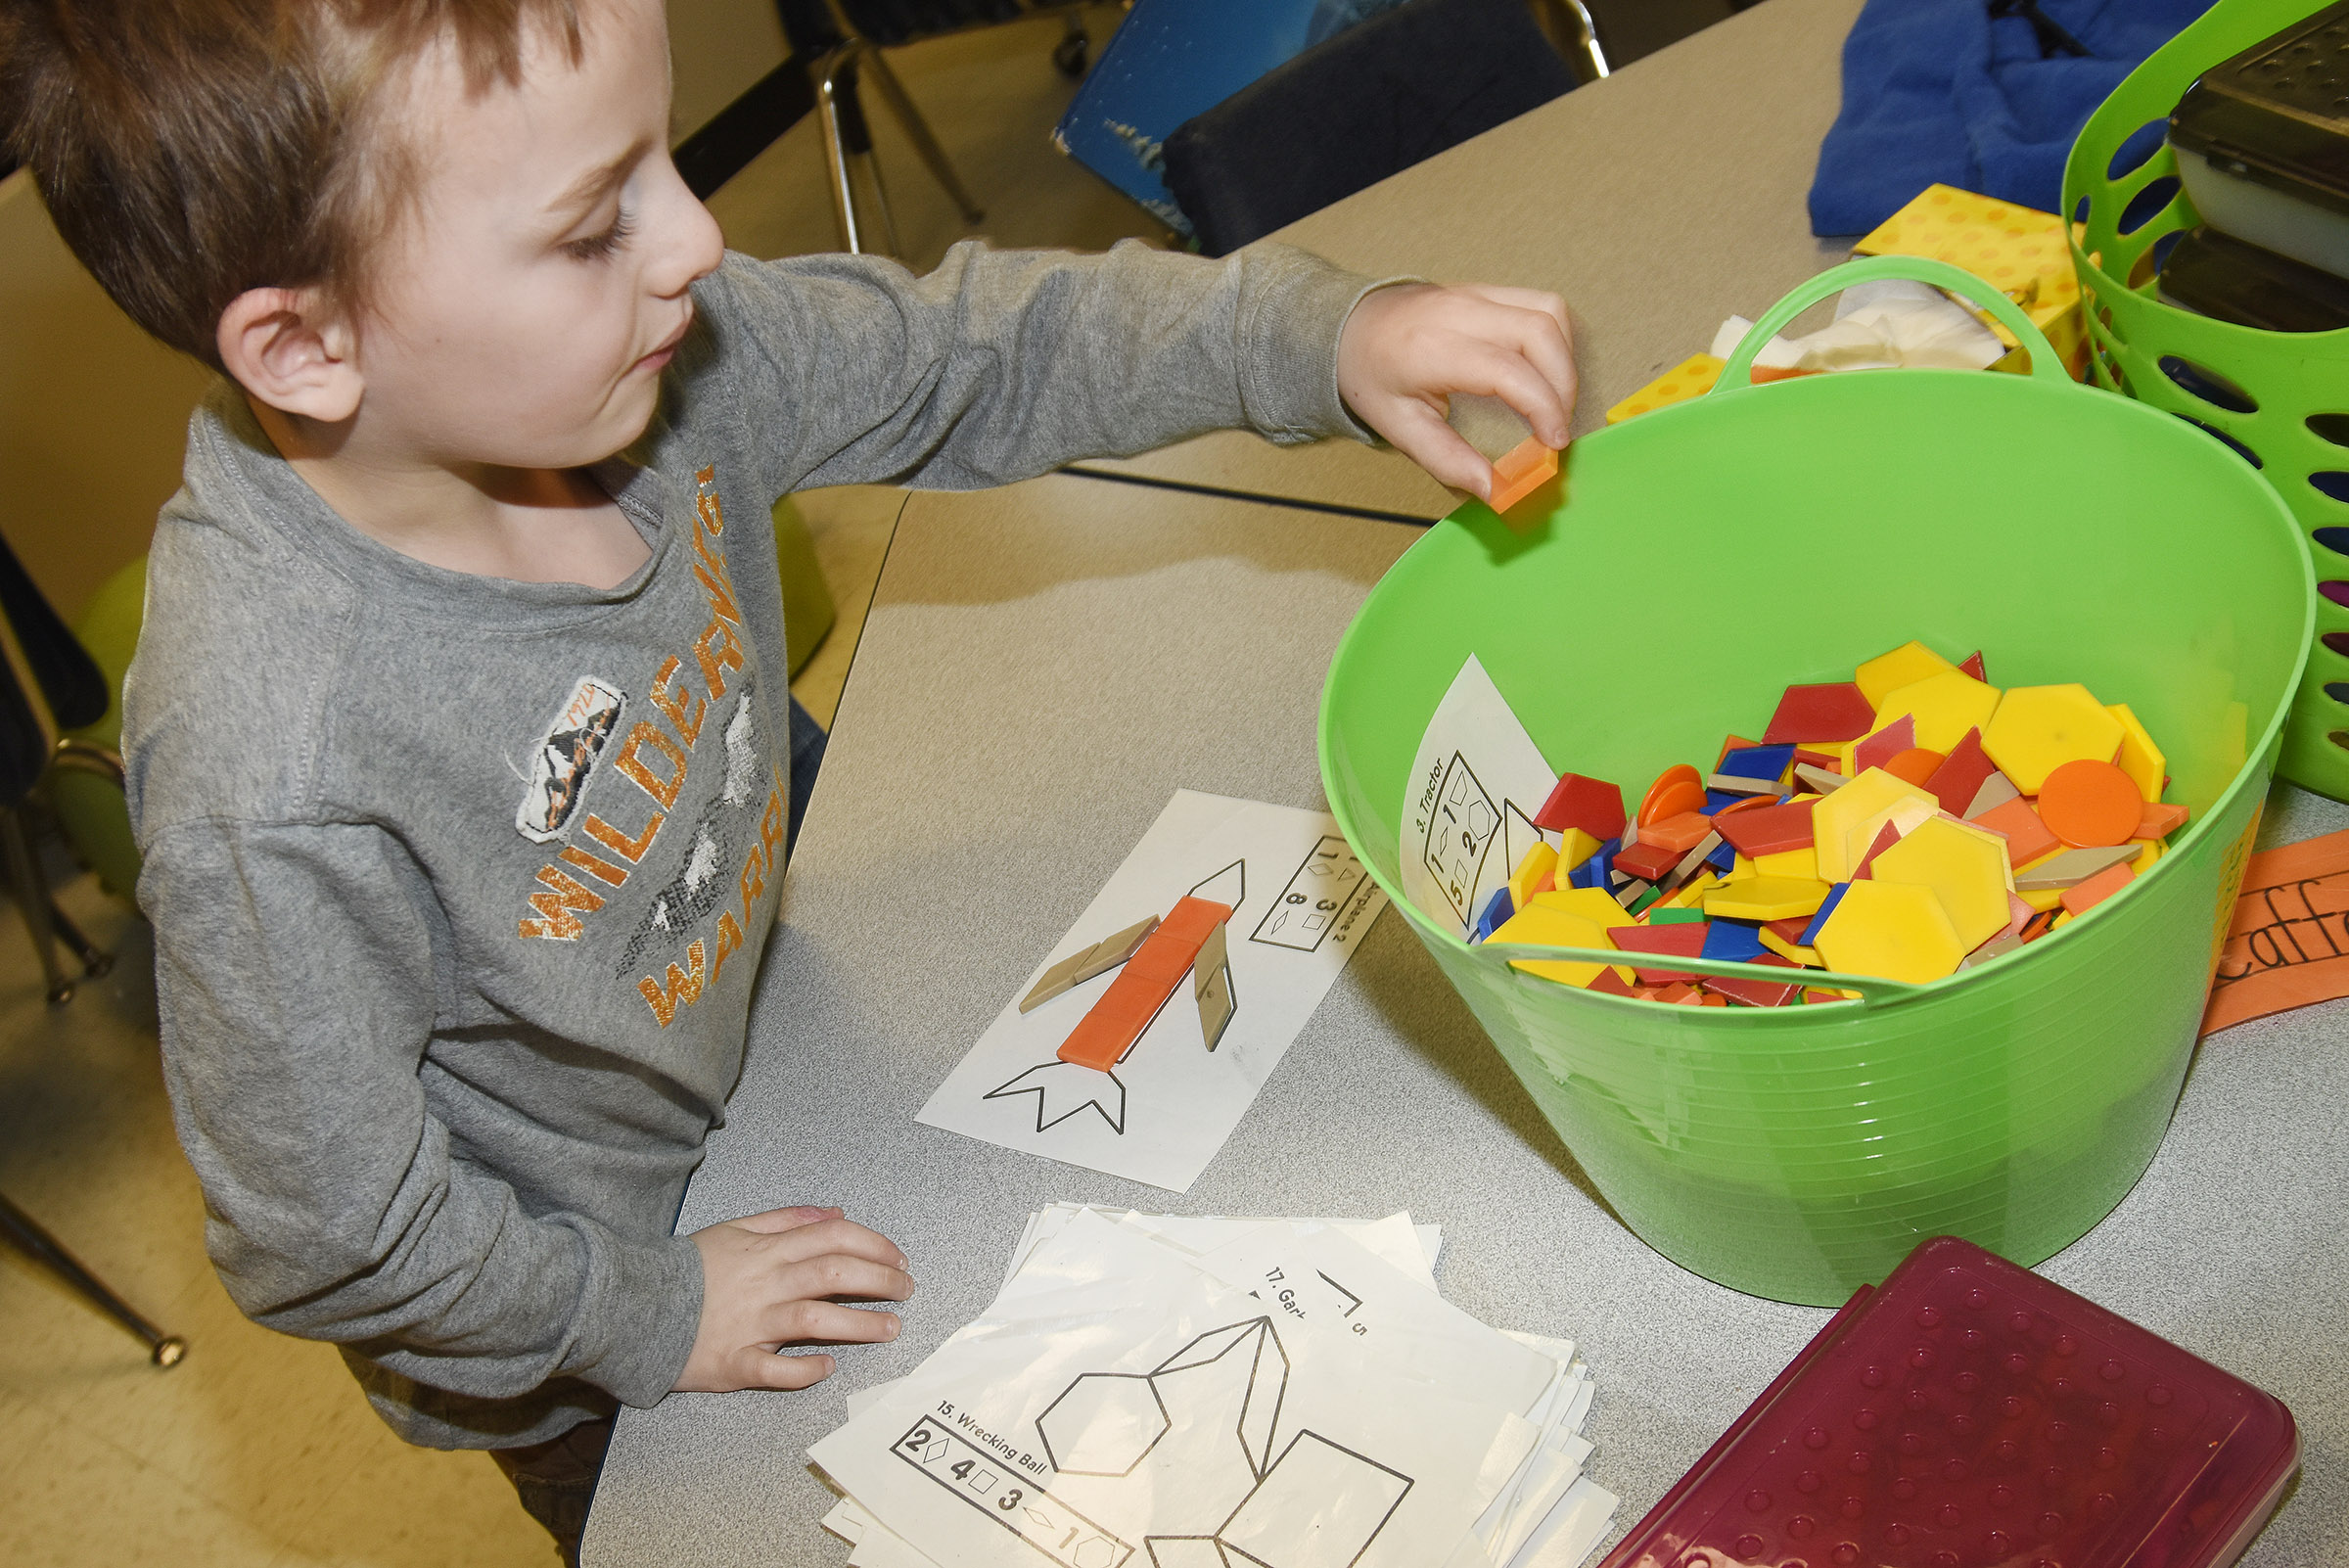 CES first-grader Ronnie Allen builds an airplane with shapes.